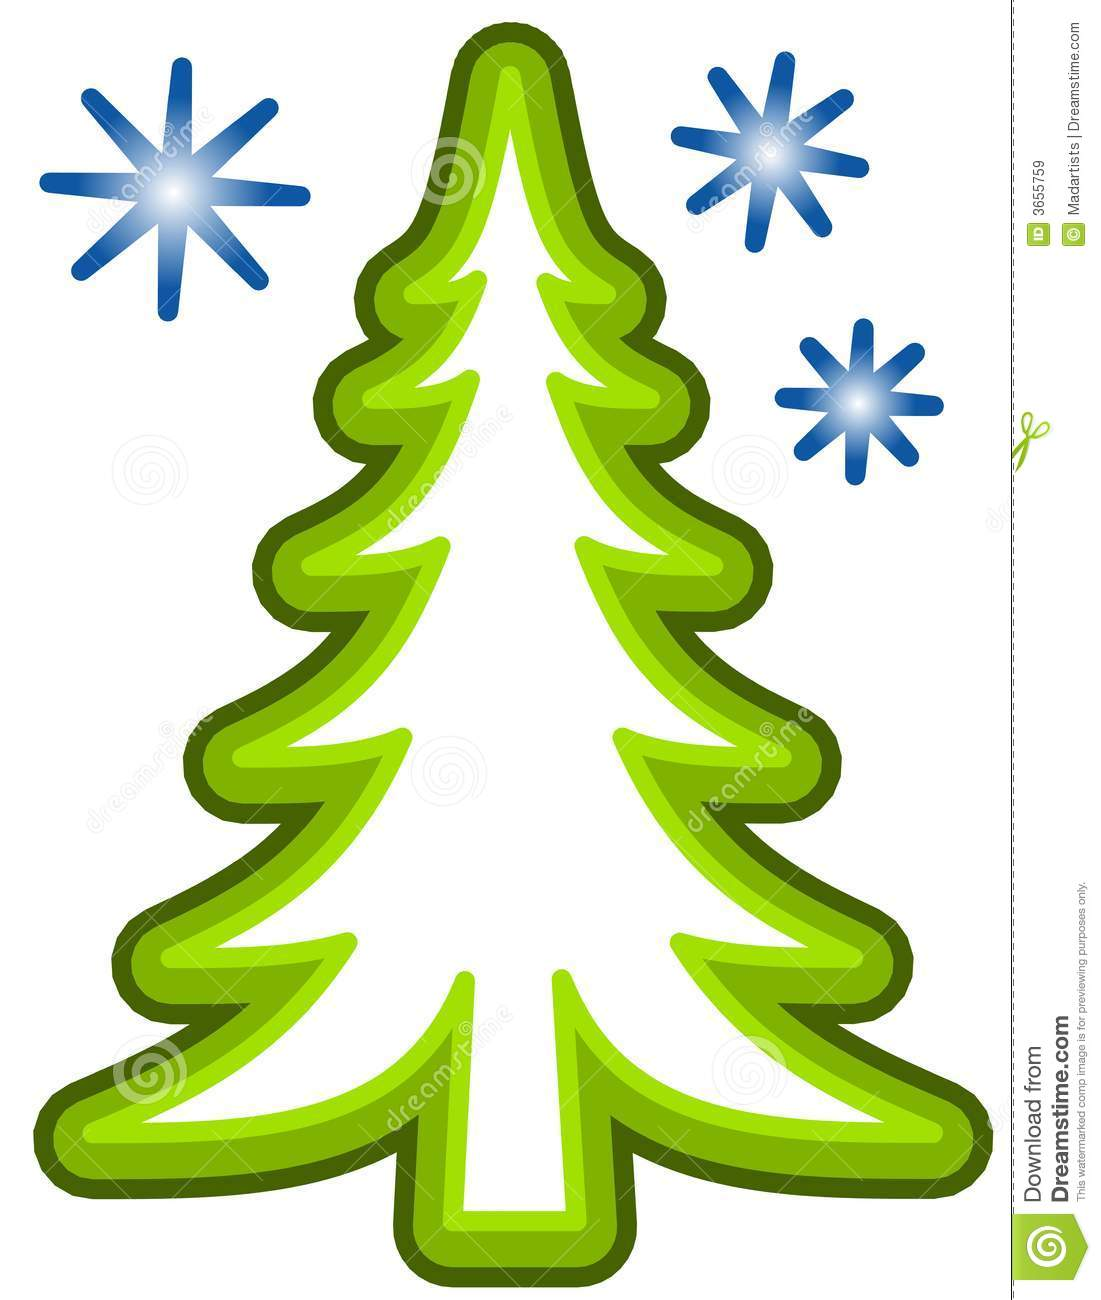 Christmas tree clipart jpeg svg transparent Christmas Tree Clipart - Clipart Kid svg transparent